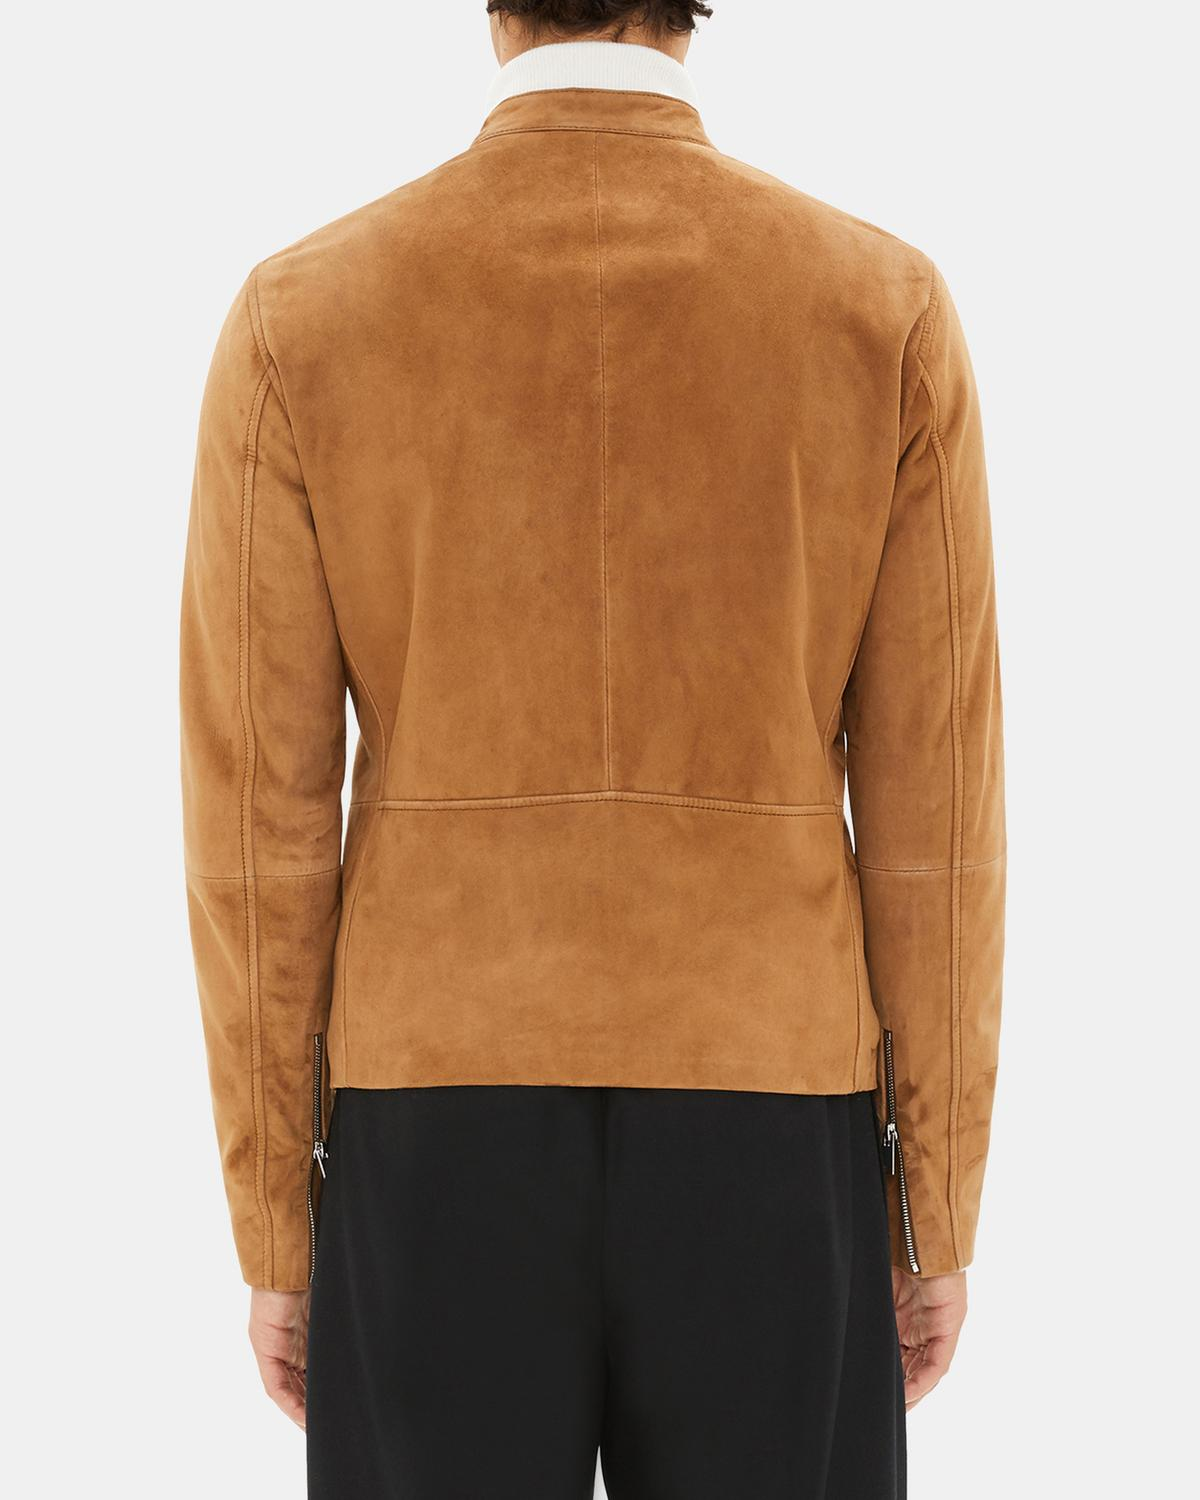 60c45d527f Suede Banded-Collar Jacket 1 - click to view larger image ...